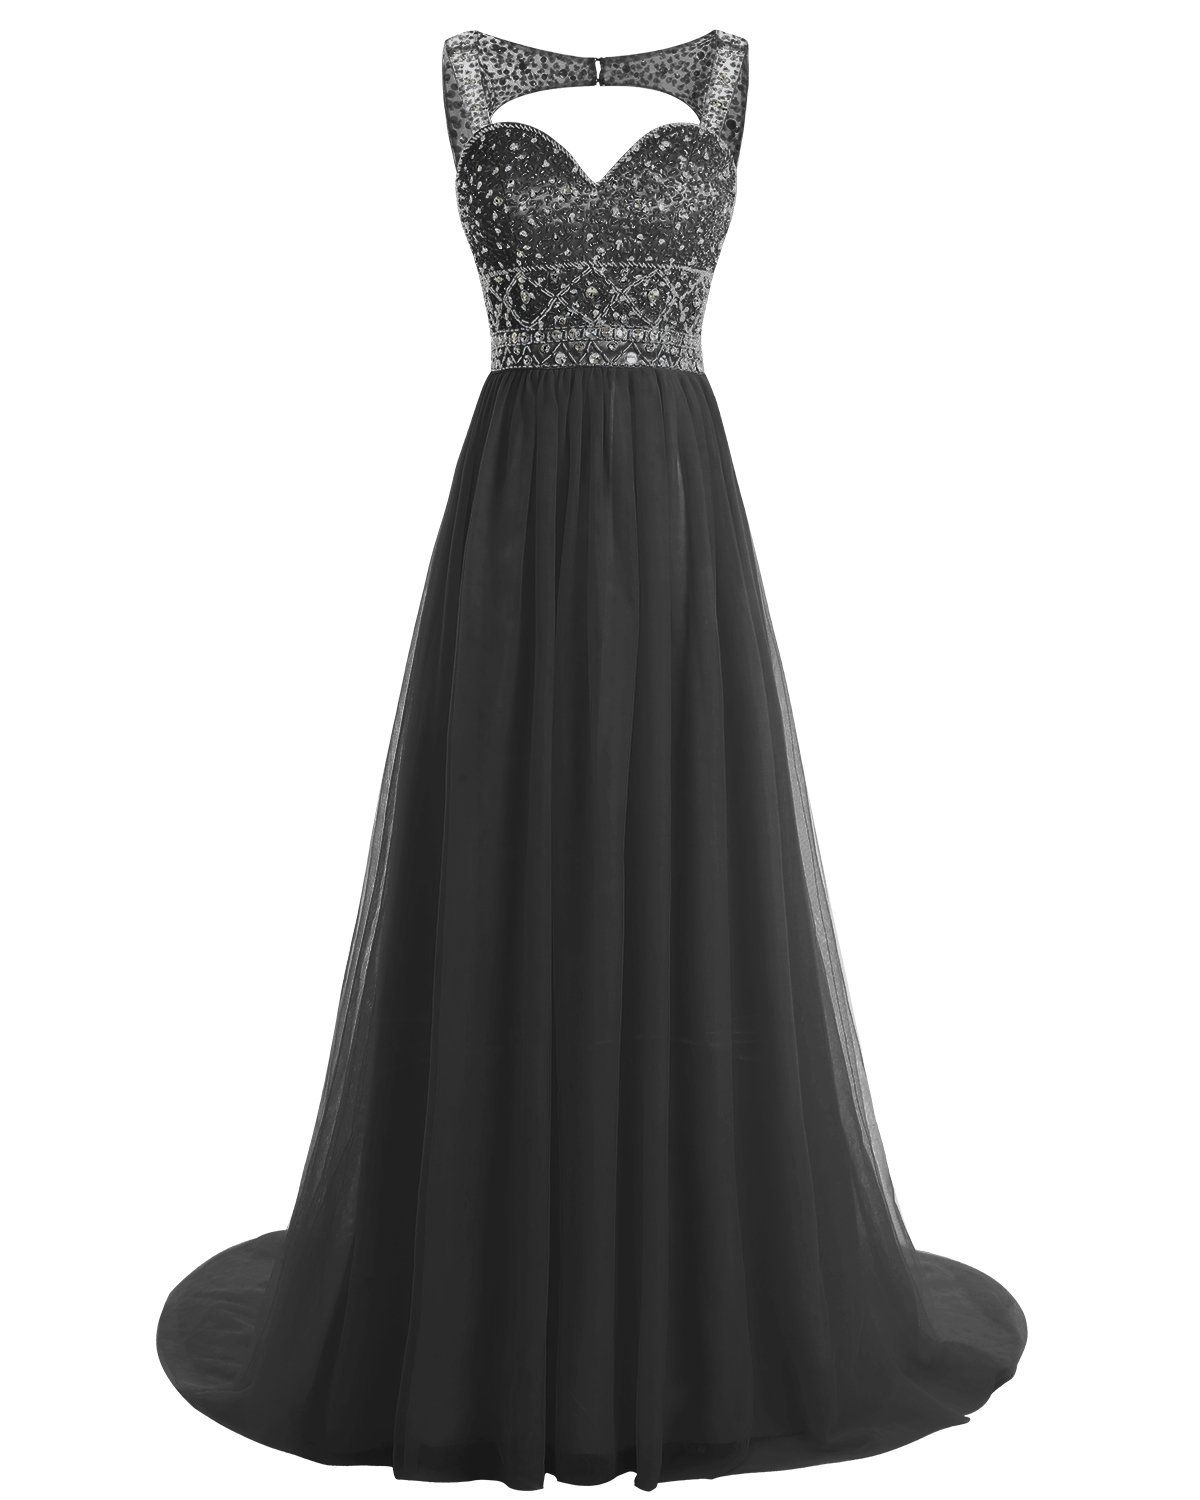 Bridesmay long tulle evening gown beaded prom dress formal party